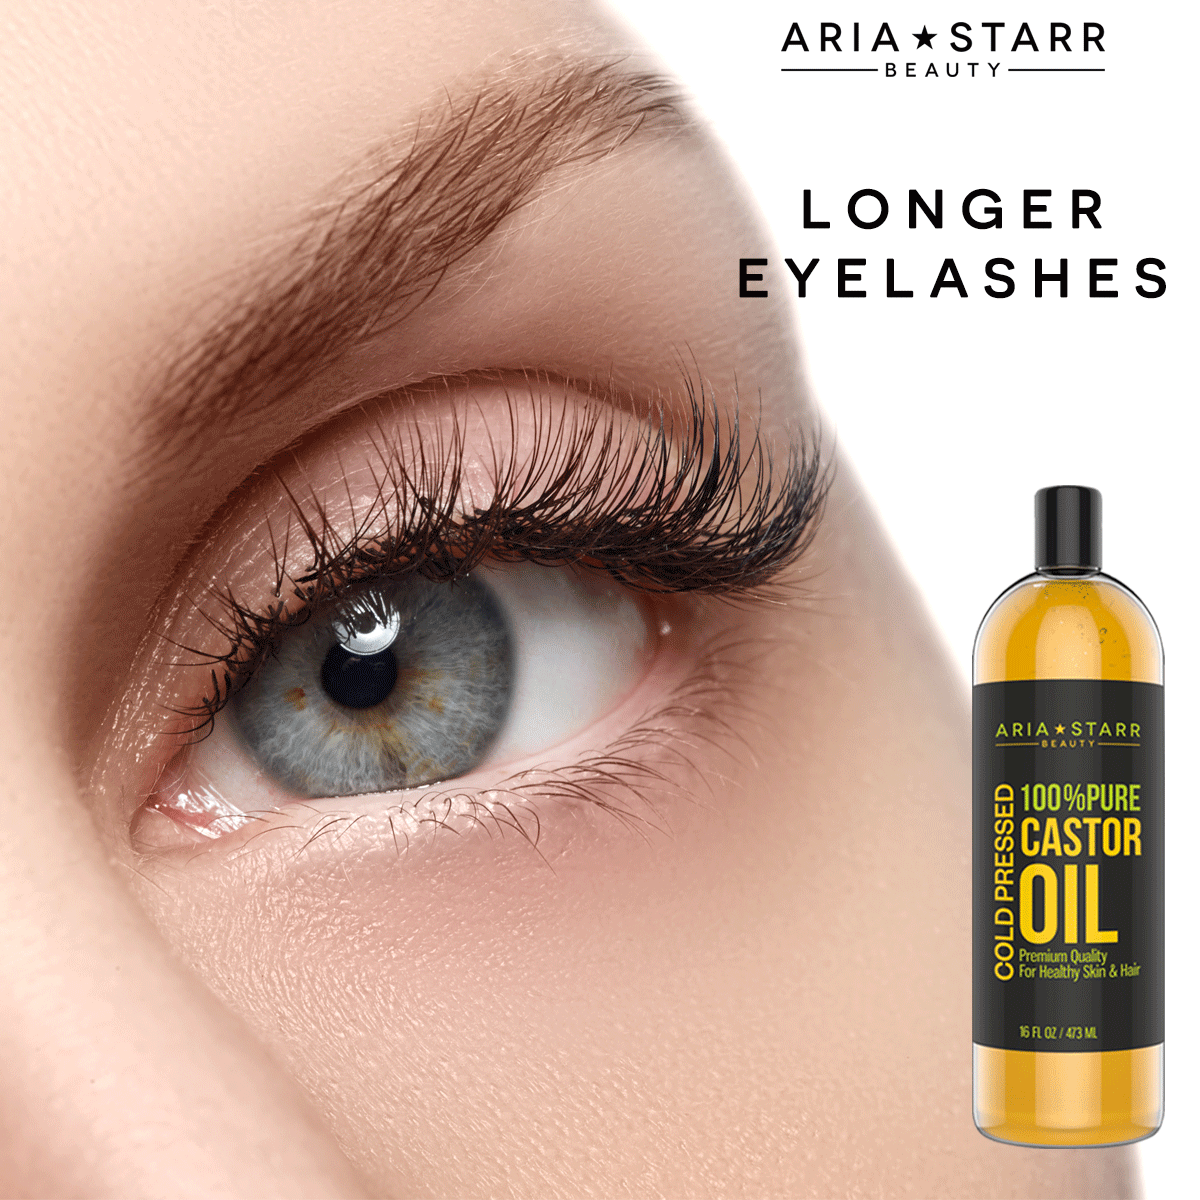 Which oil is better for eyelashes